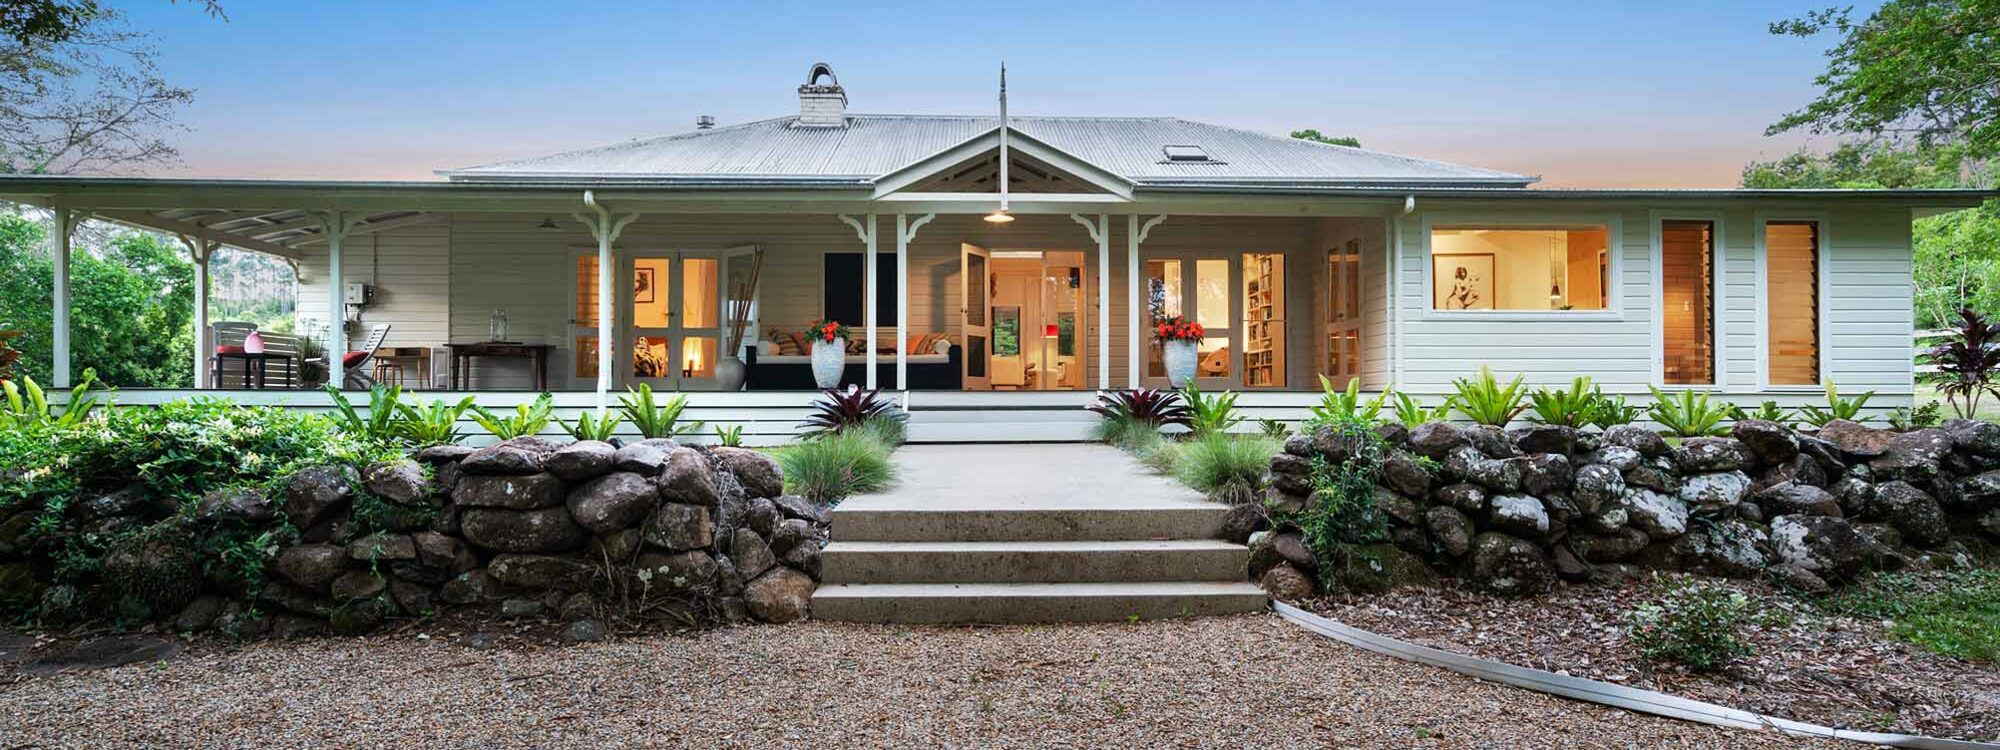 Bellbird - Byron Bay - Front Exterior at Dusk a